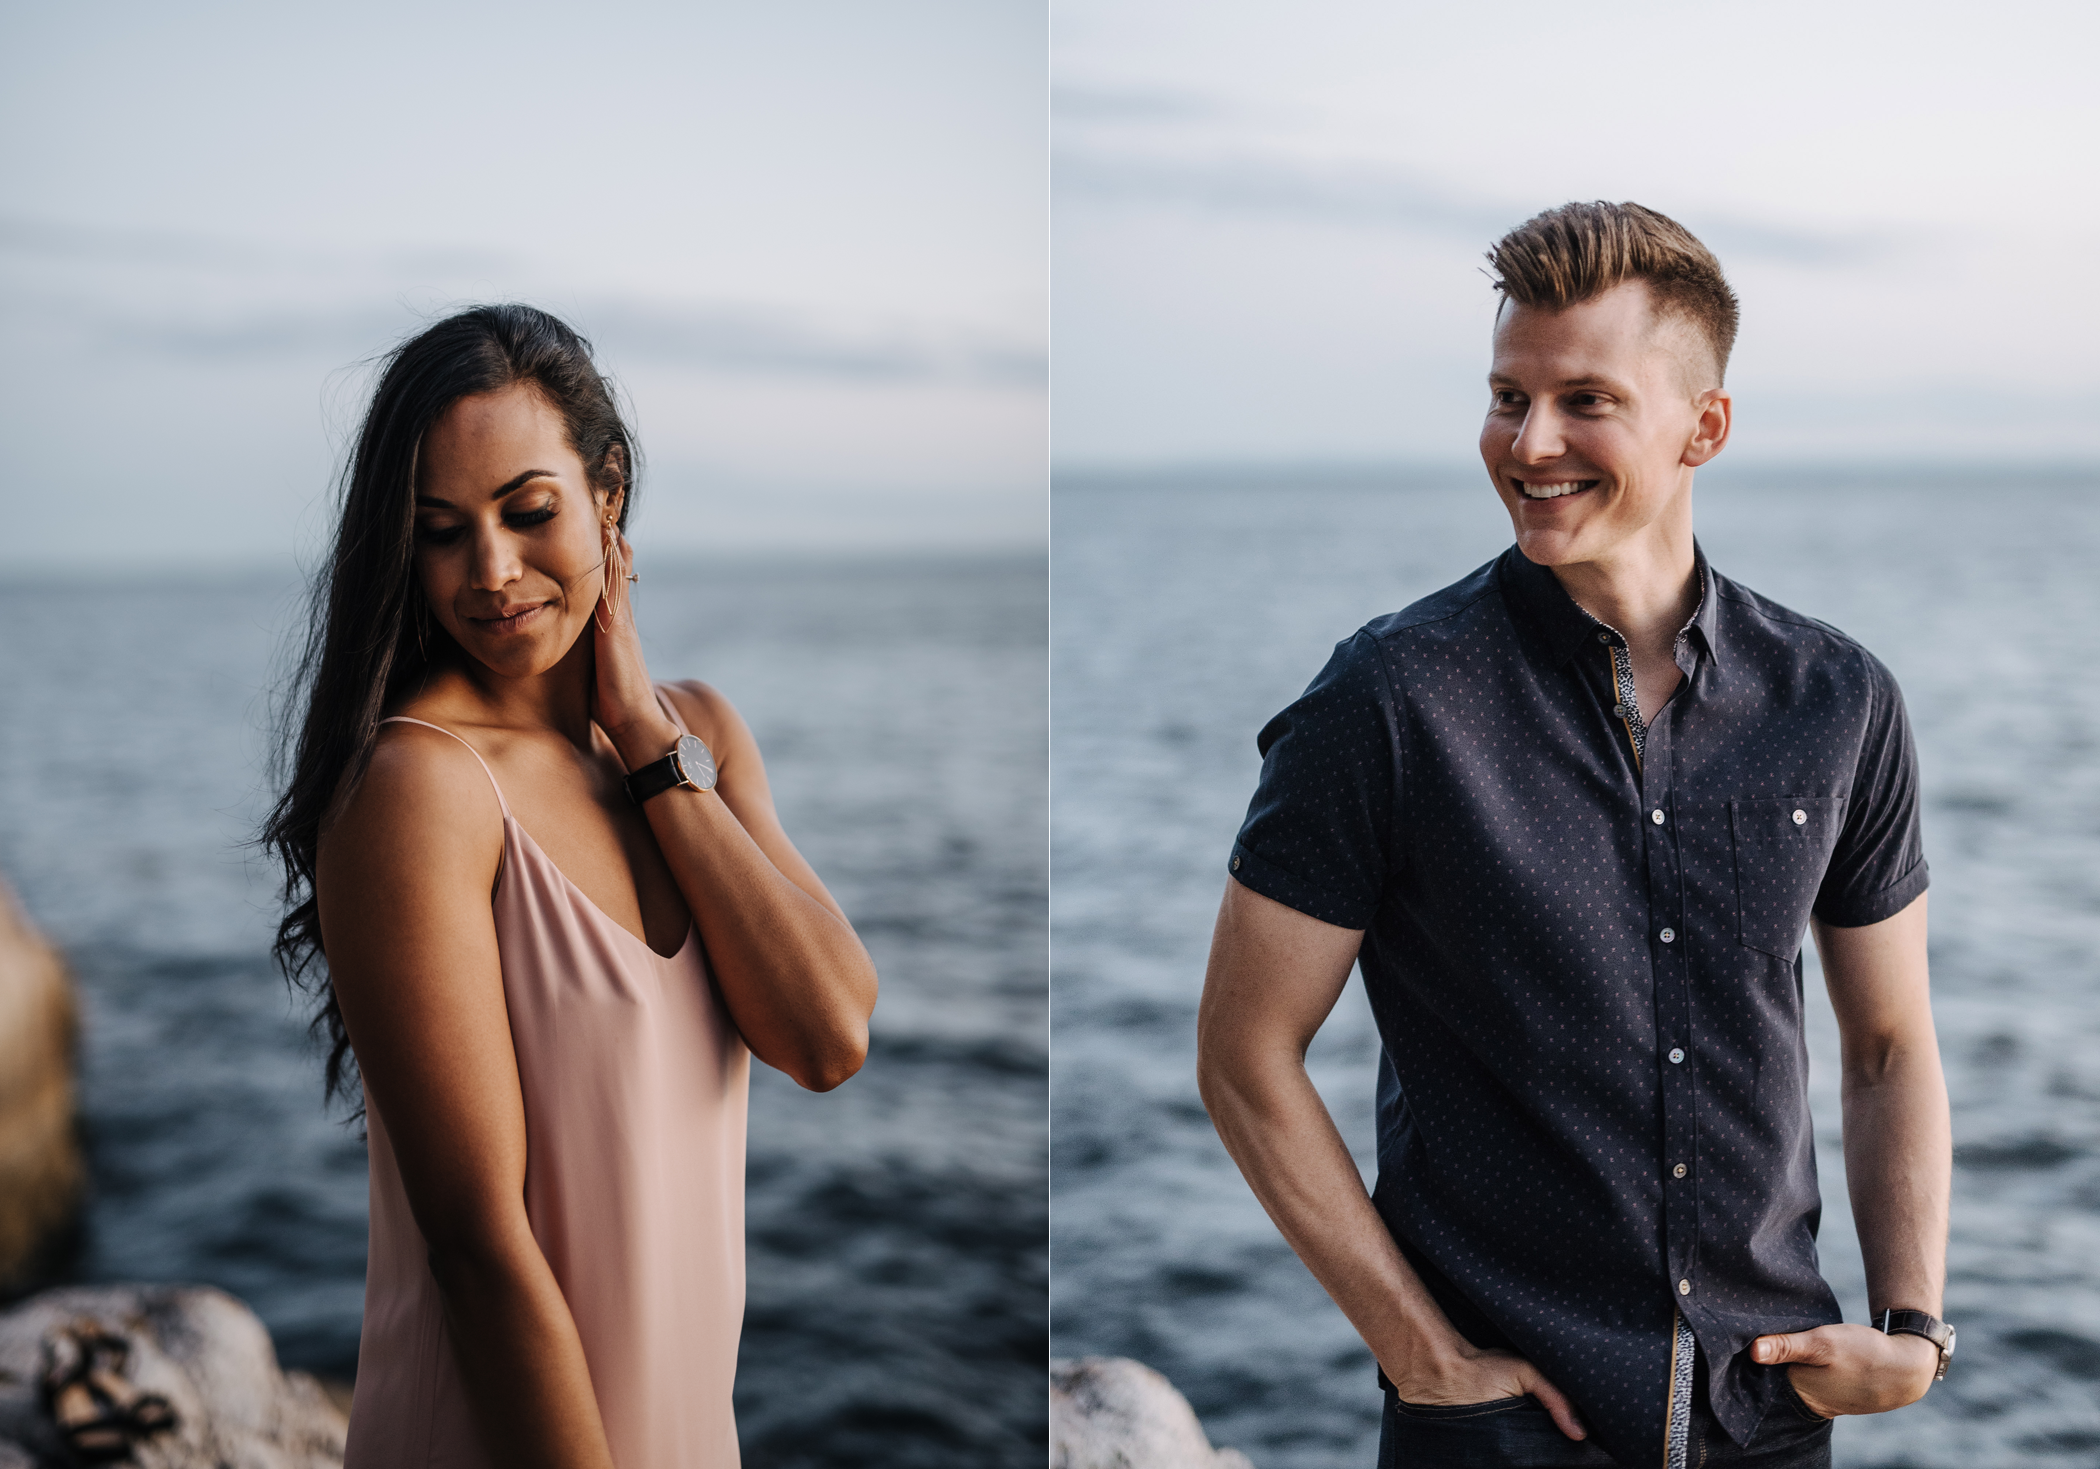 016-kaoverii-silva-HJ-prewedding-vancouver-photography-proposal.png